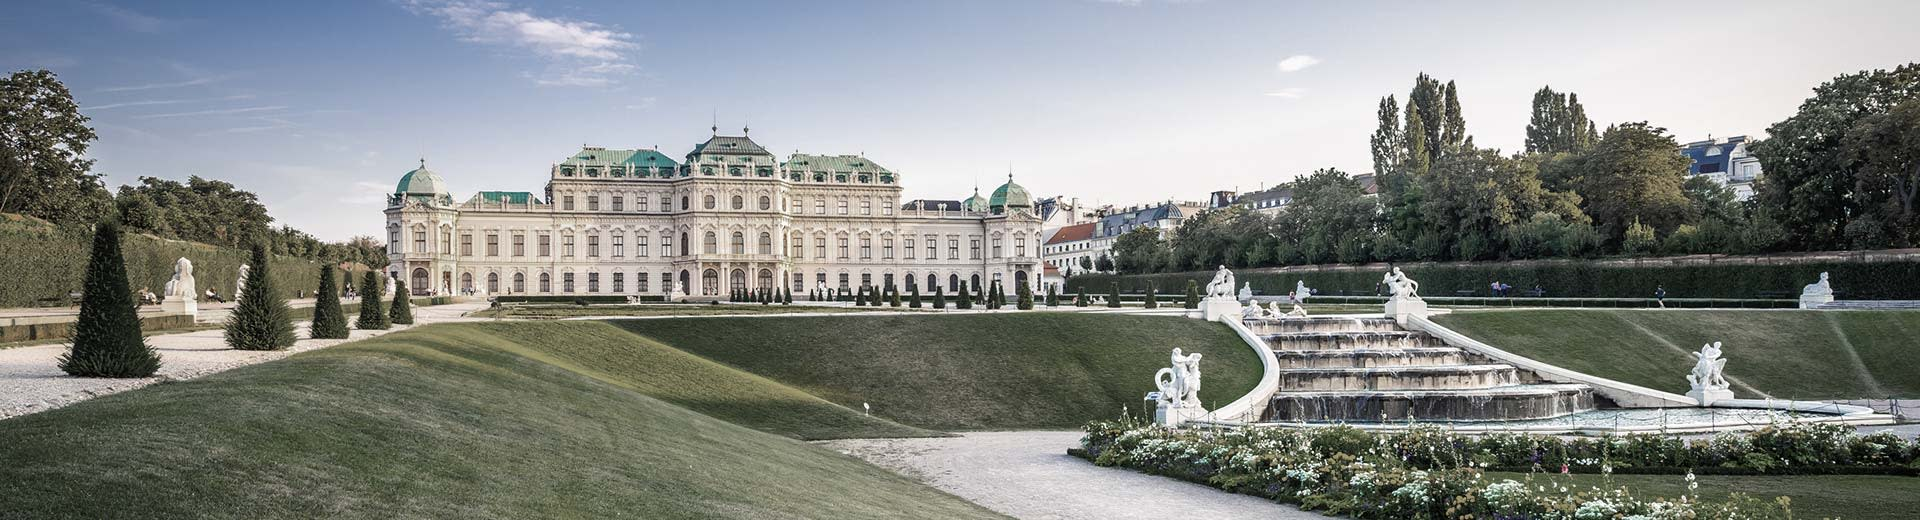 The world-famous Schönbrunn Palace lies among it's incedibly manicured lawns on a beautiful, clear day